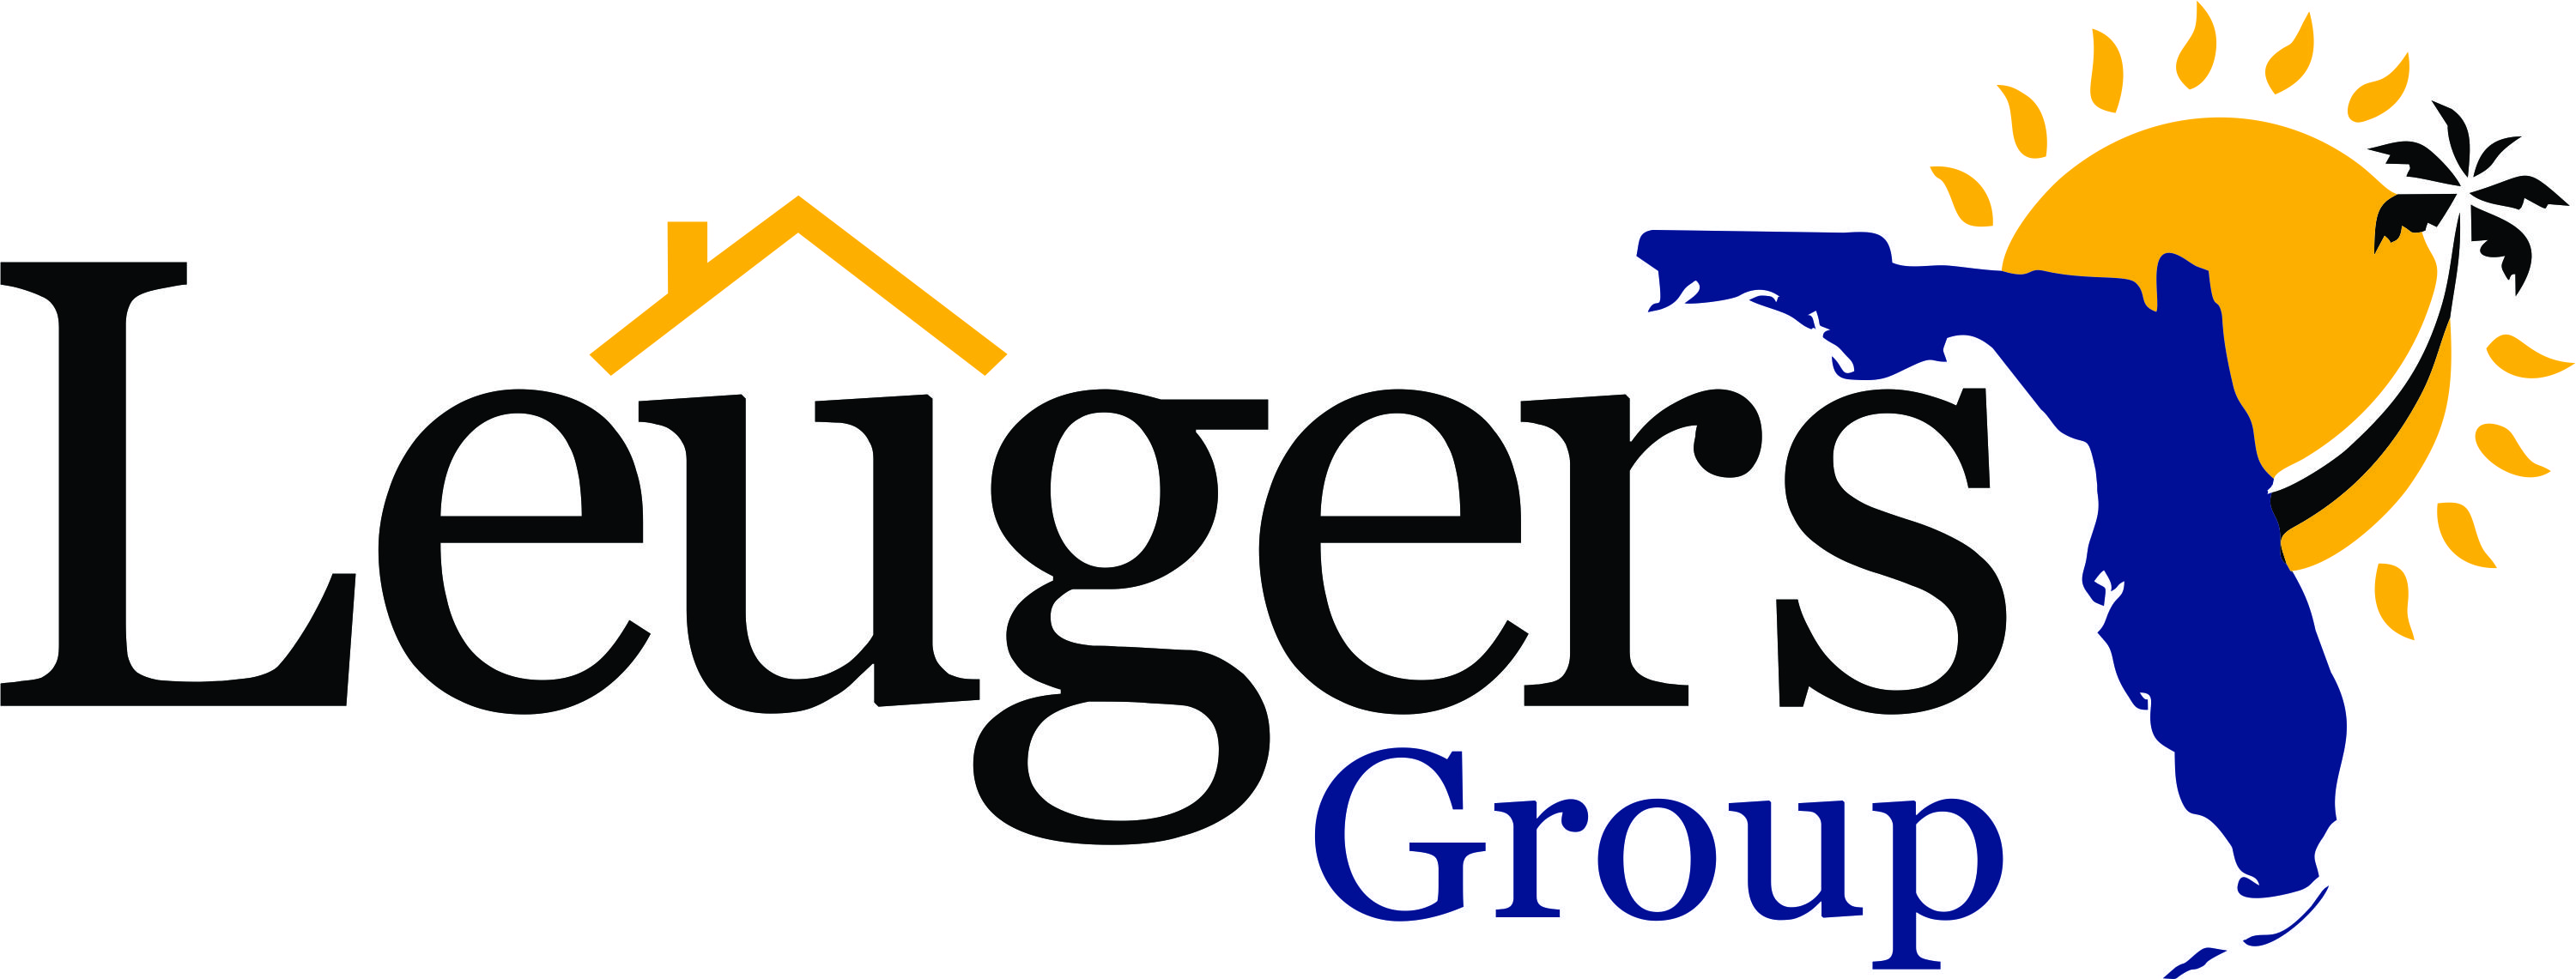 Leugers Group, Powered by eXp Realty logo